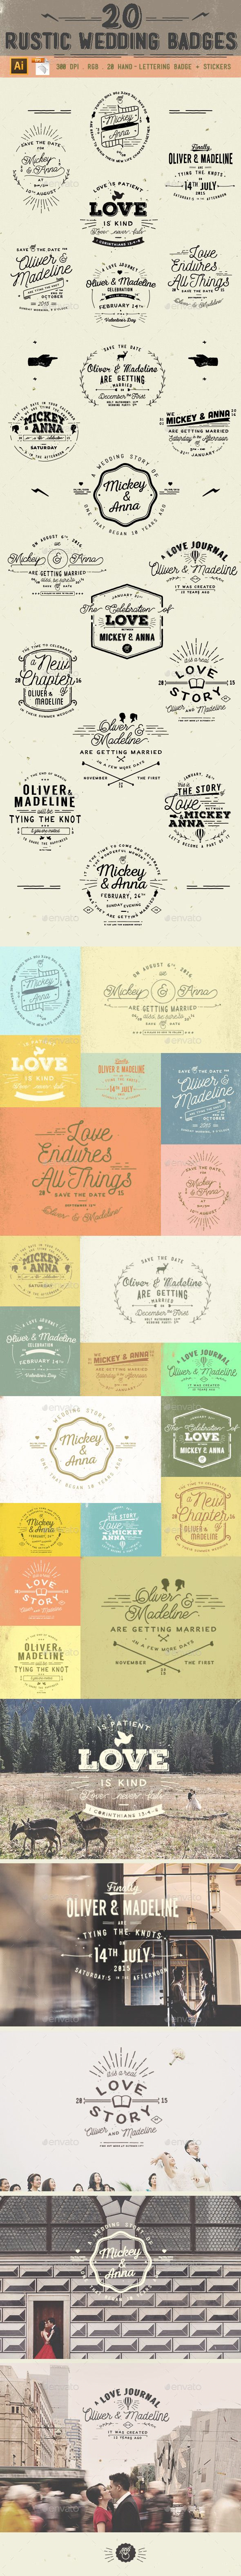 20 Rustic Wedding Badge #design #logos Download: http://graphicriver.net/item/20-rustic-wedding-badge/11795799?ref=ksioks